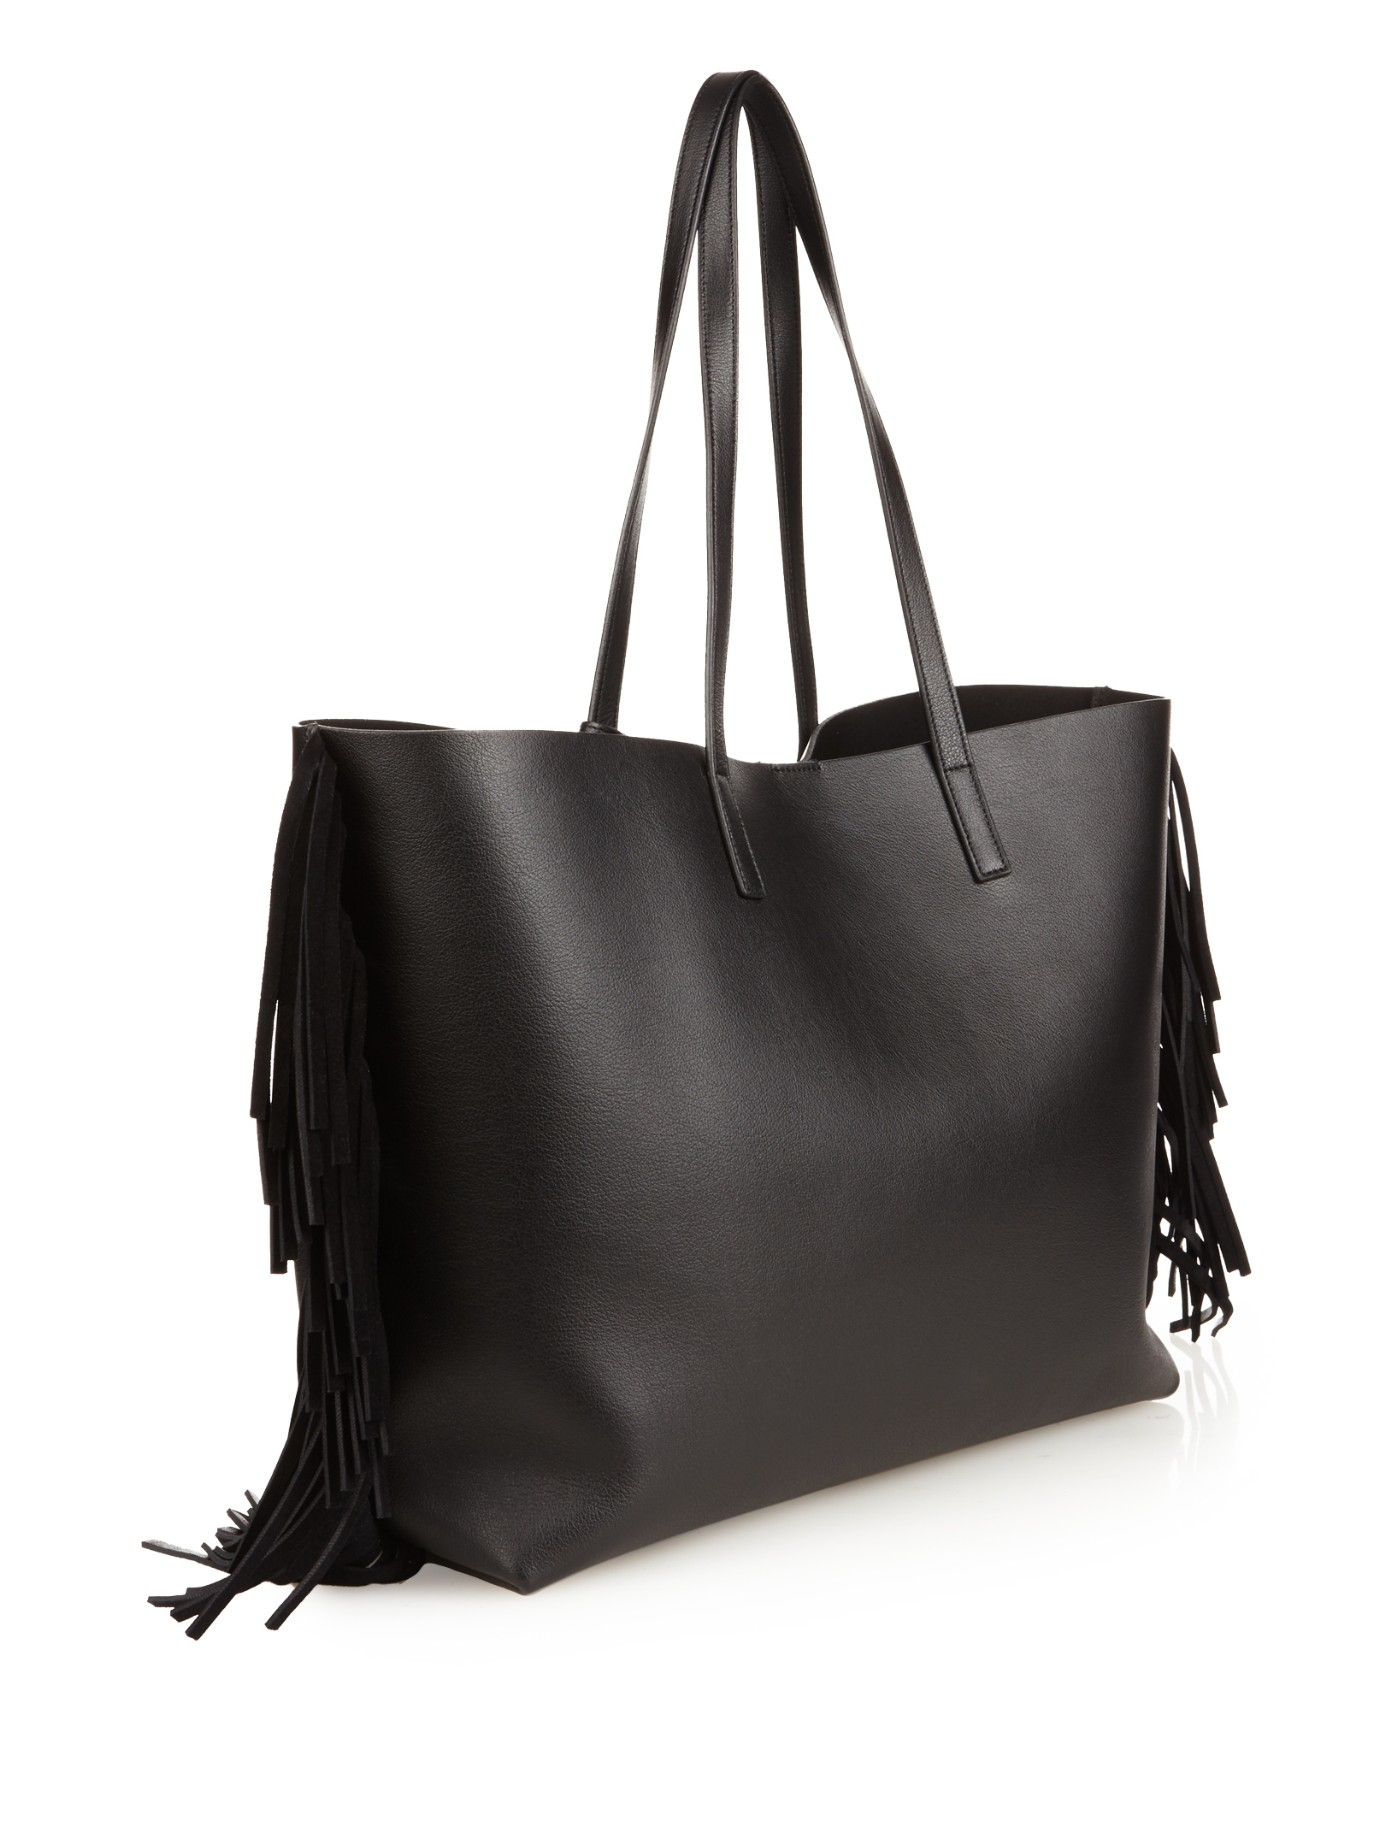 college handbag - Saint laurent Large Fringed Leather Shopping Bag in Black | Lyst